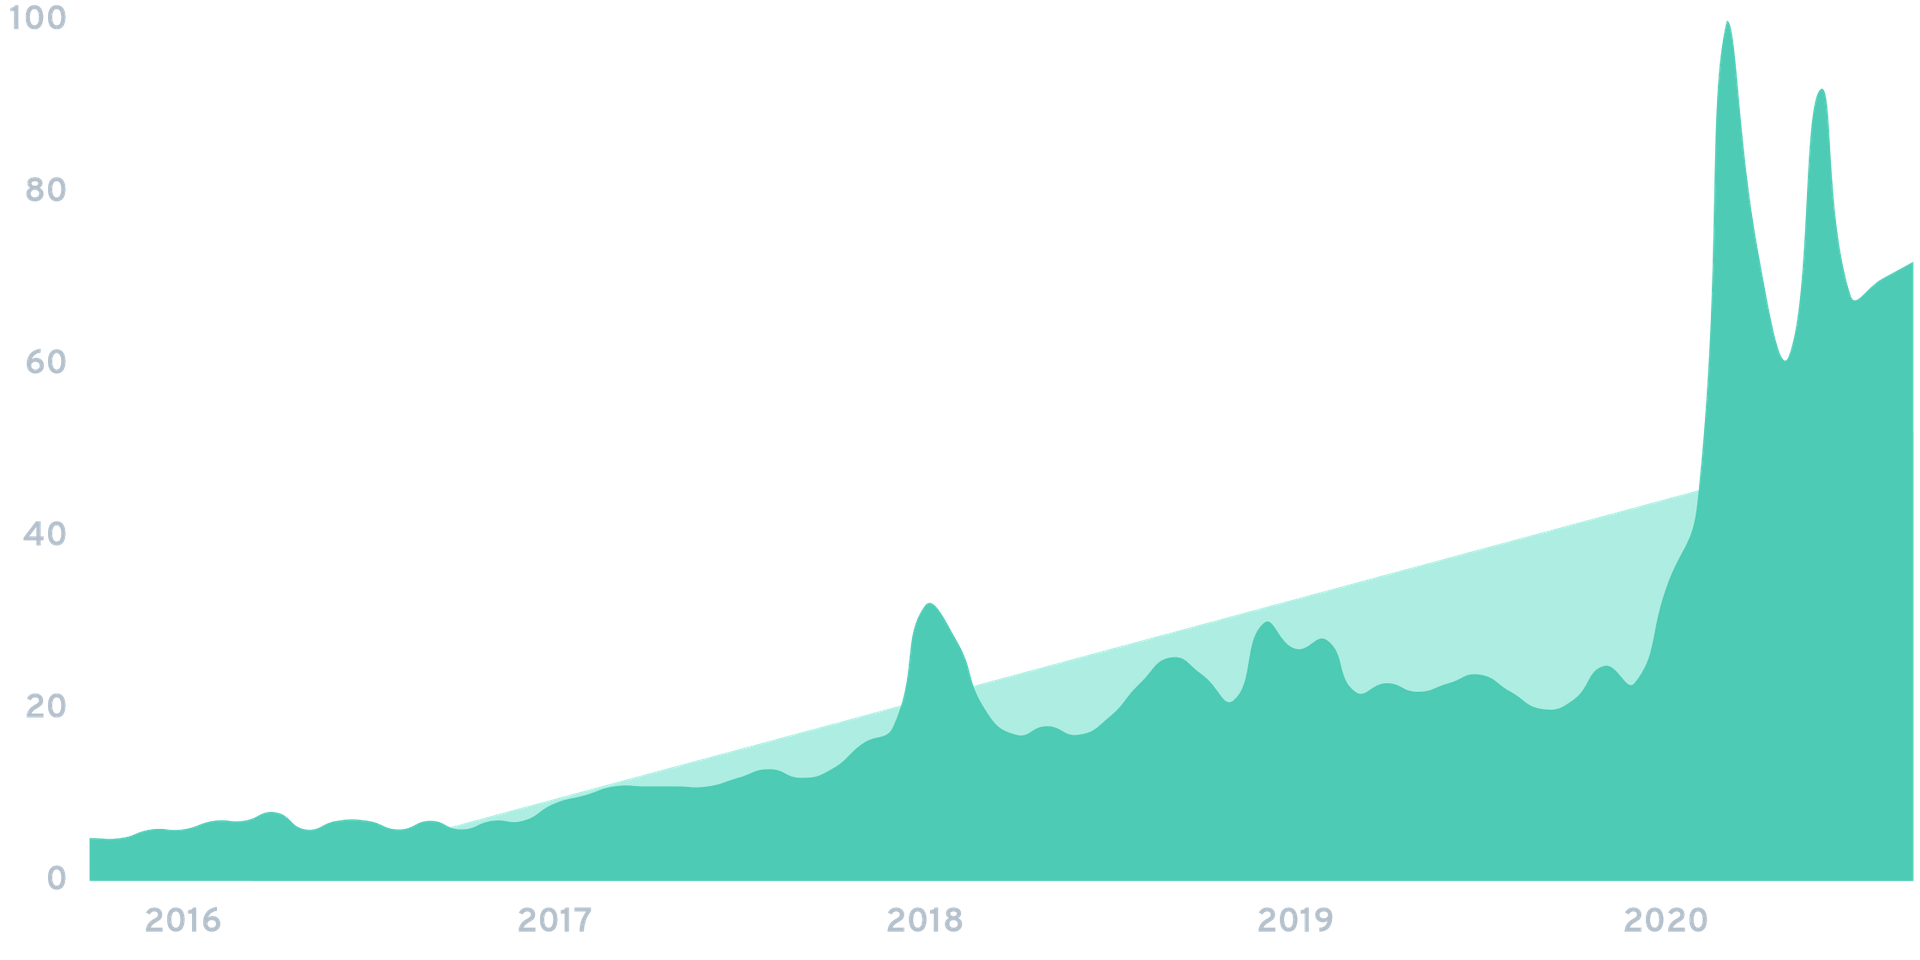 searches for beanstox over time